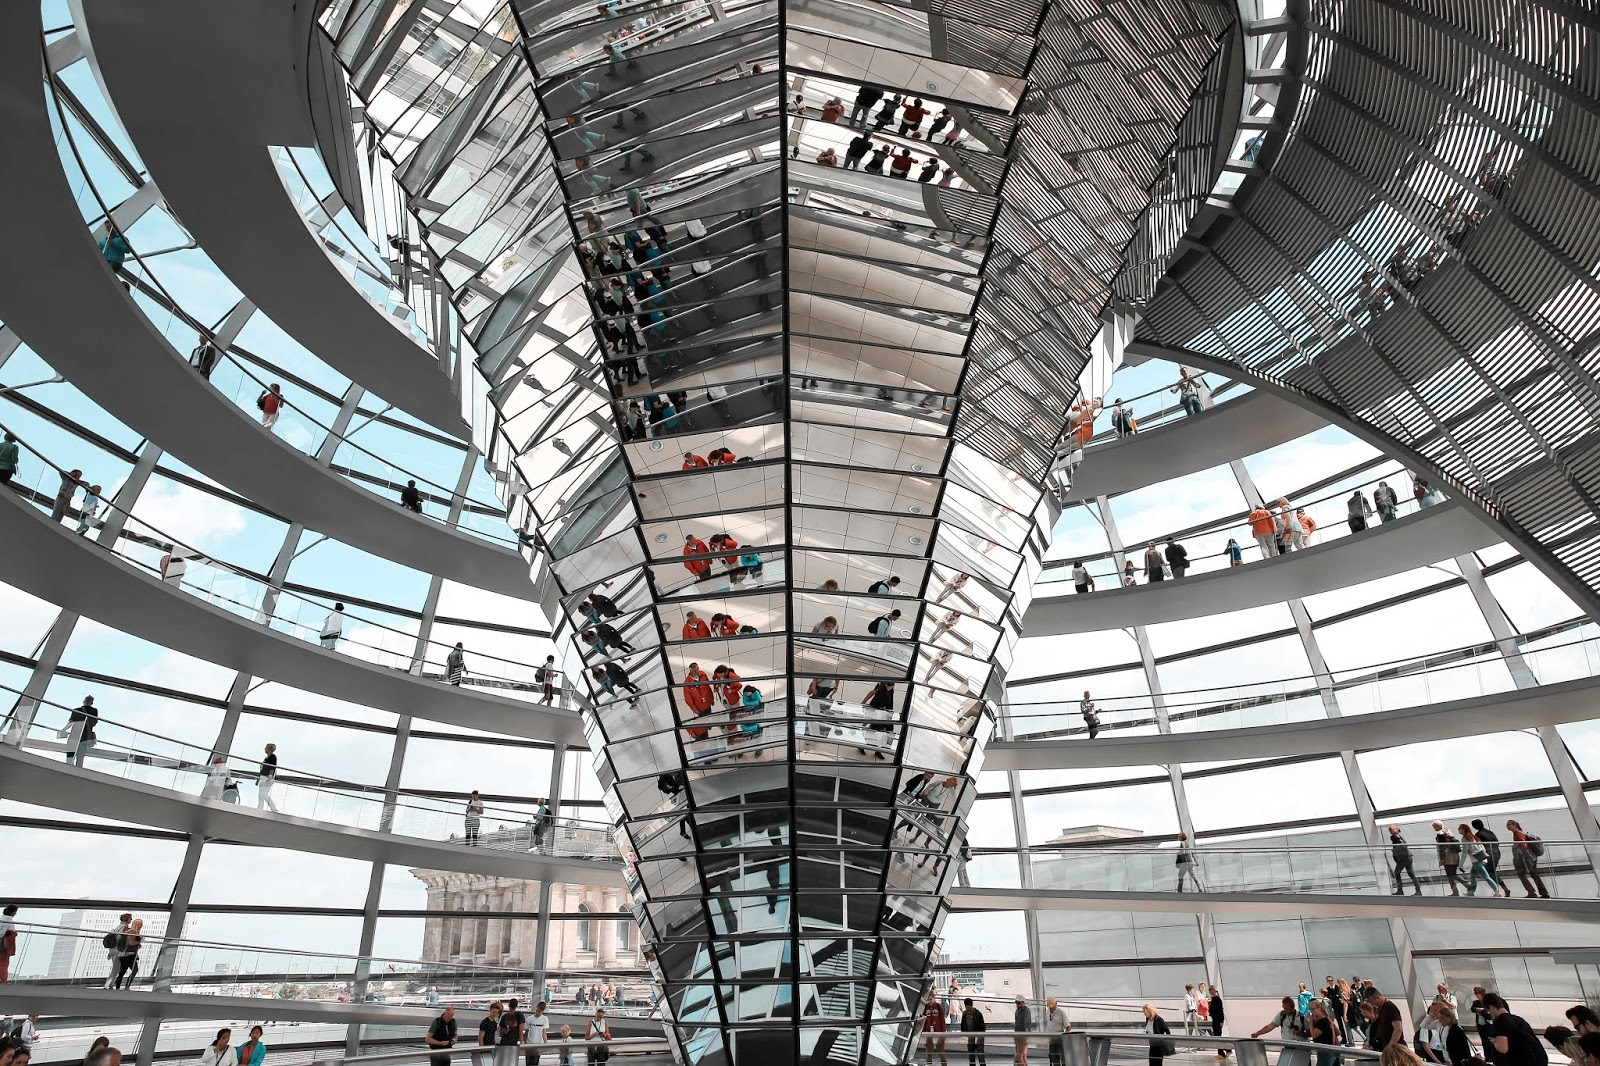 The Reichstag Building Dome